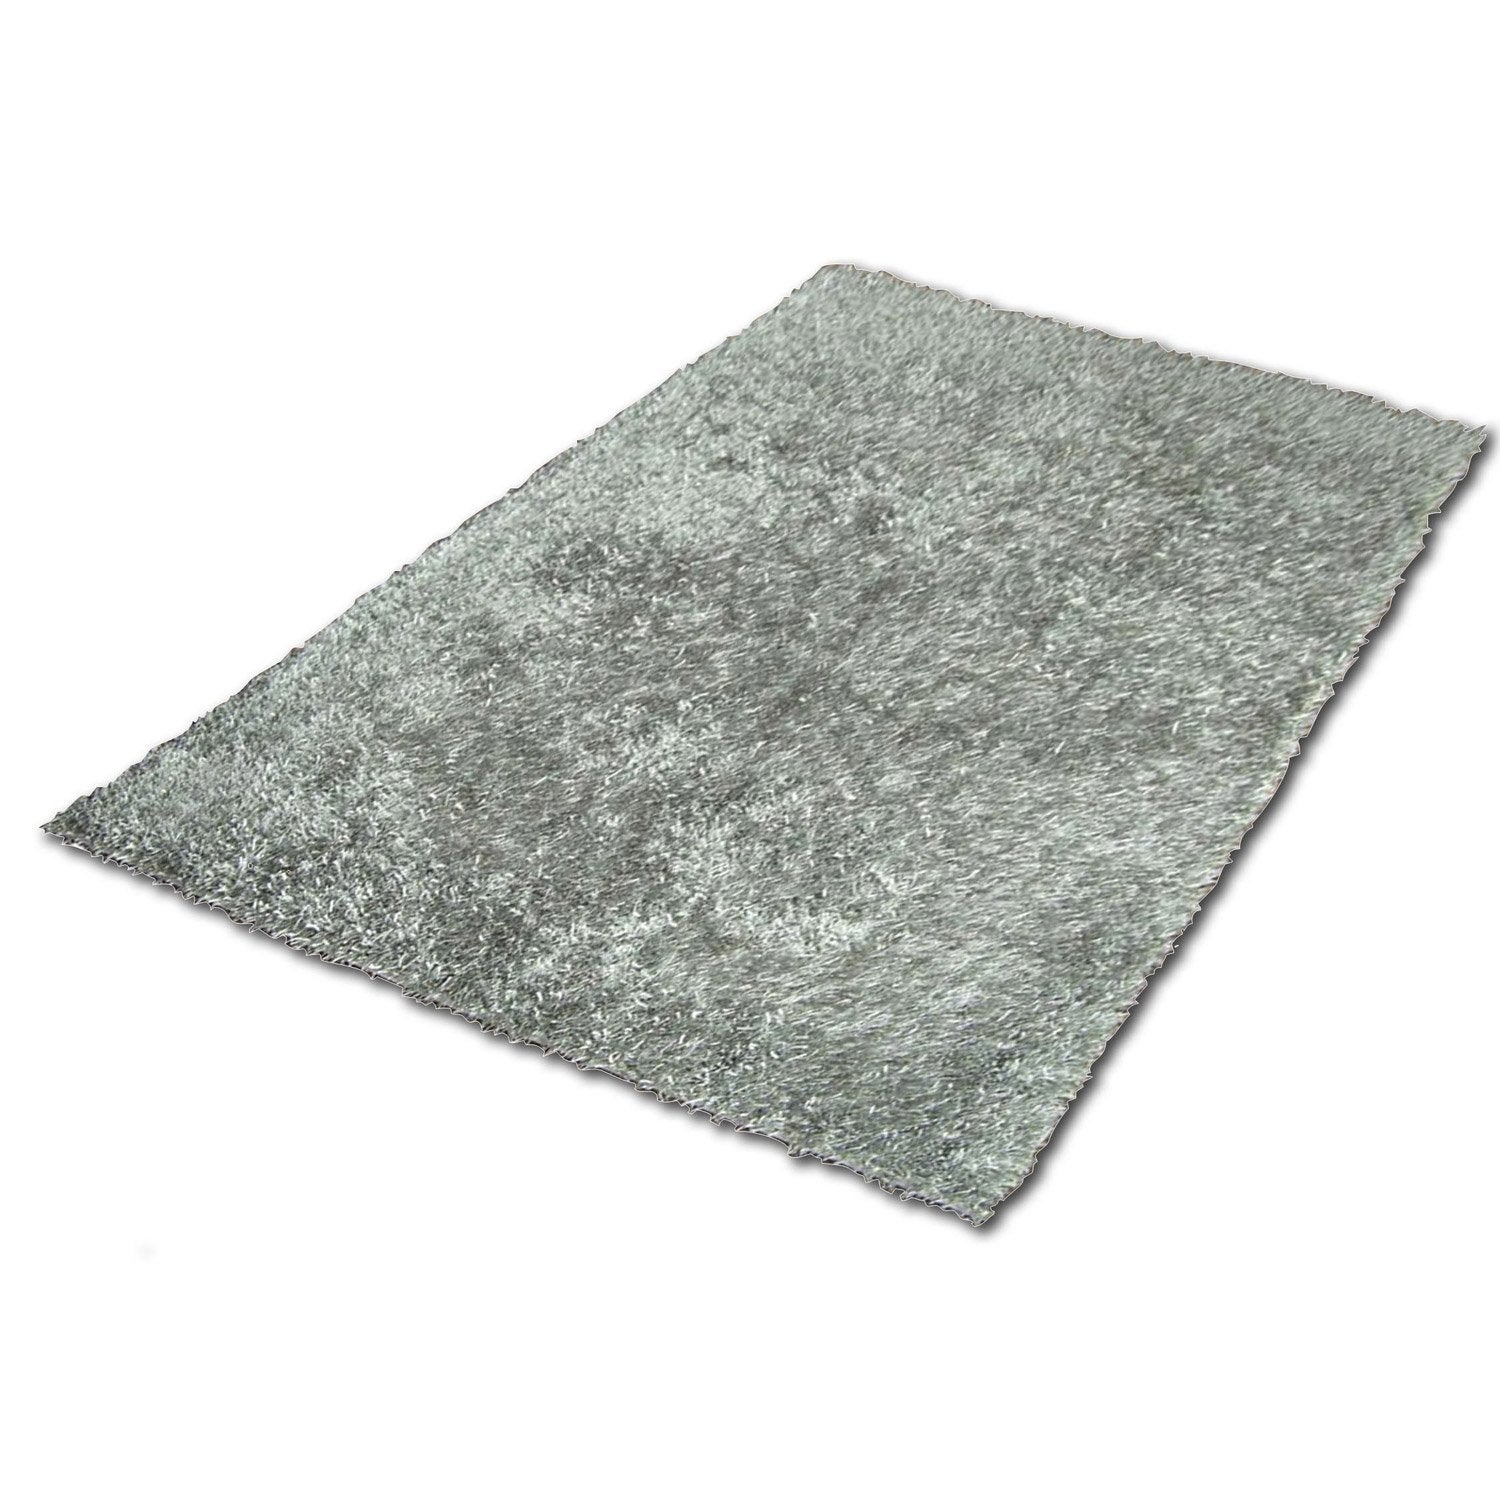 Tapis gris shaggy lilou x cm leroy merlin - Tapis shaggy vert anis ...